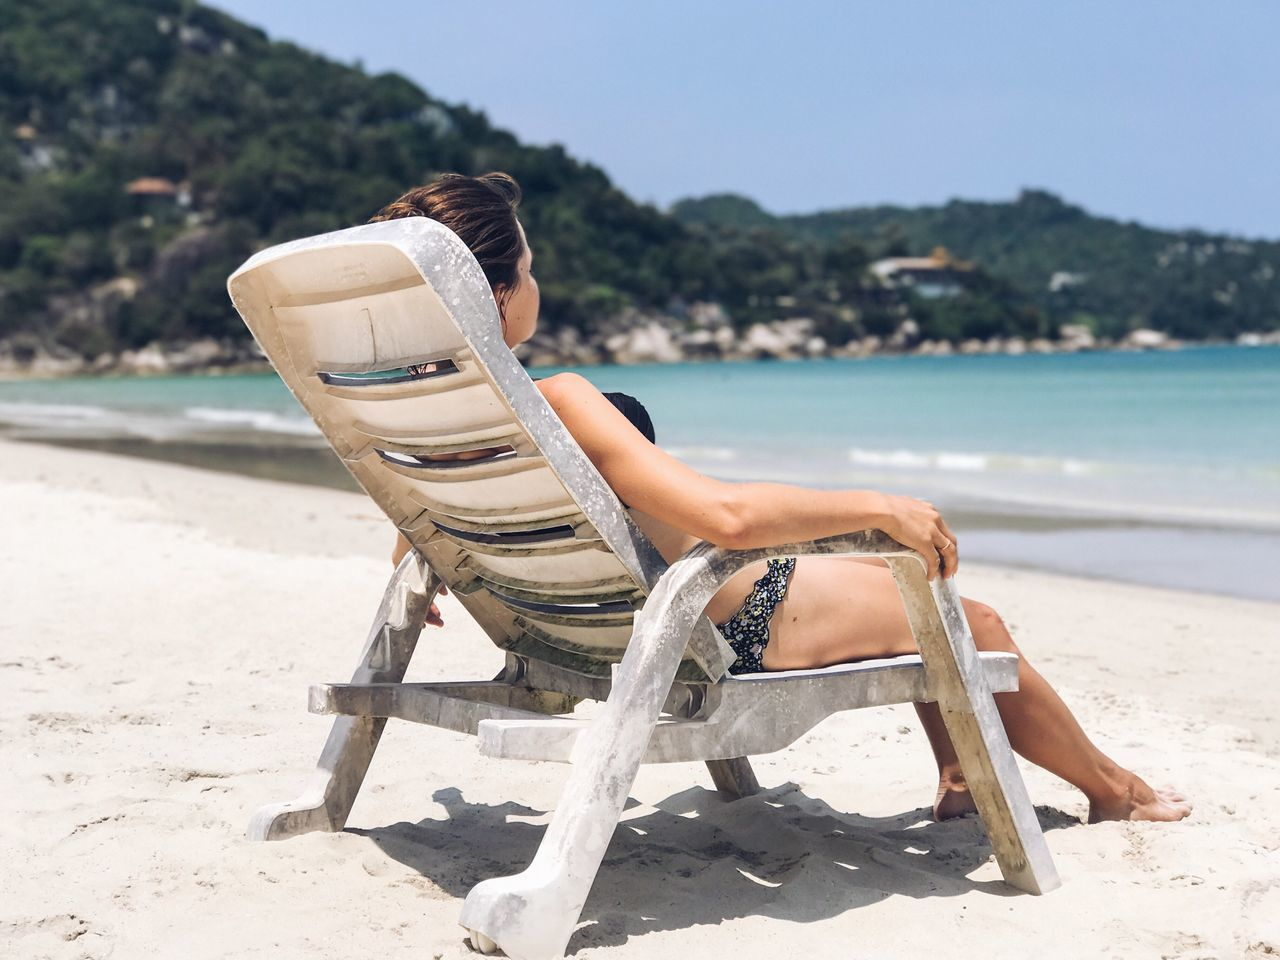 Beach Sand Sunlight Sea Relaxation Outdoors Day Sitting Nature One Person Chair Water Sky Real People Beauty In Nature Vacations Lifestyles Sunbathing Swimwear One Woman Only Rear View Thailand Tourist Young Adult People